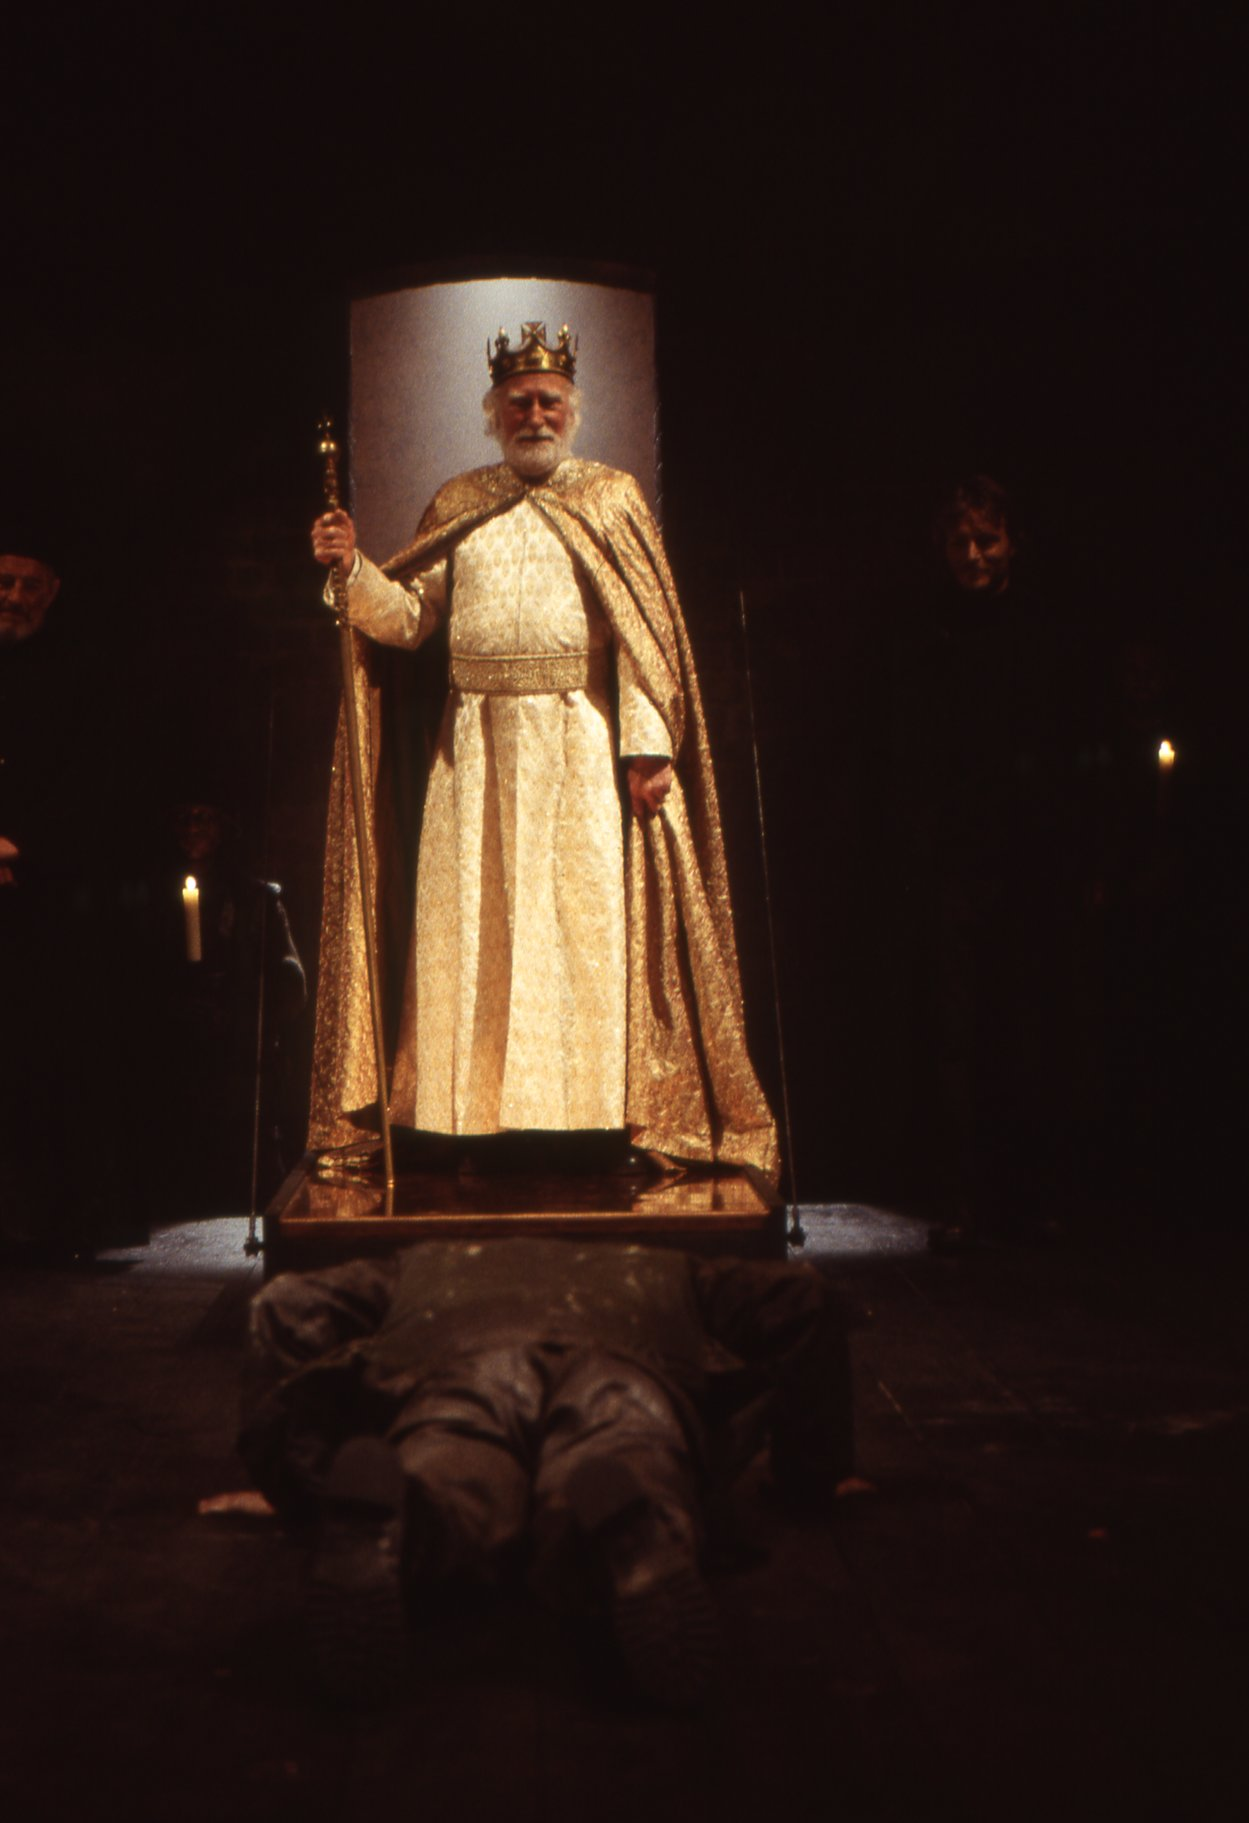 Macbeth lies at the feet of King Duncan.